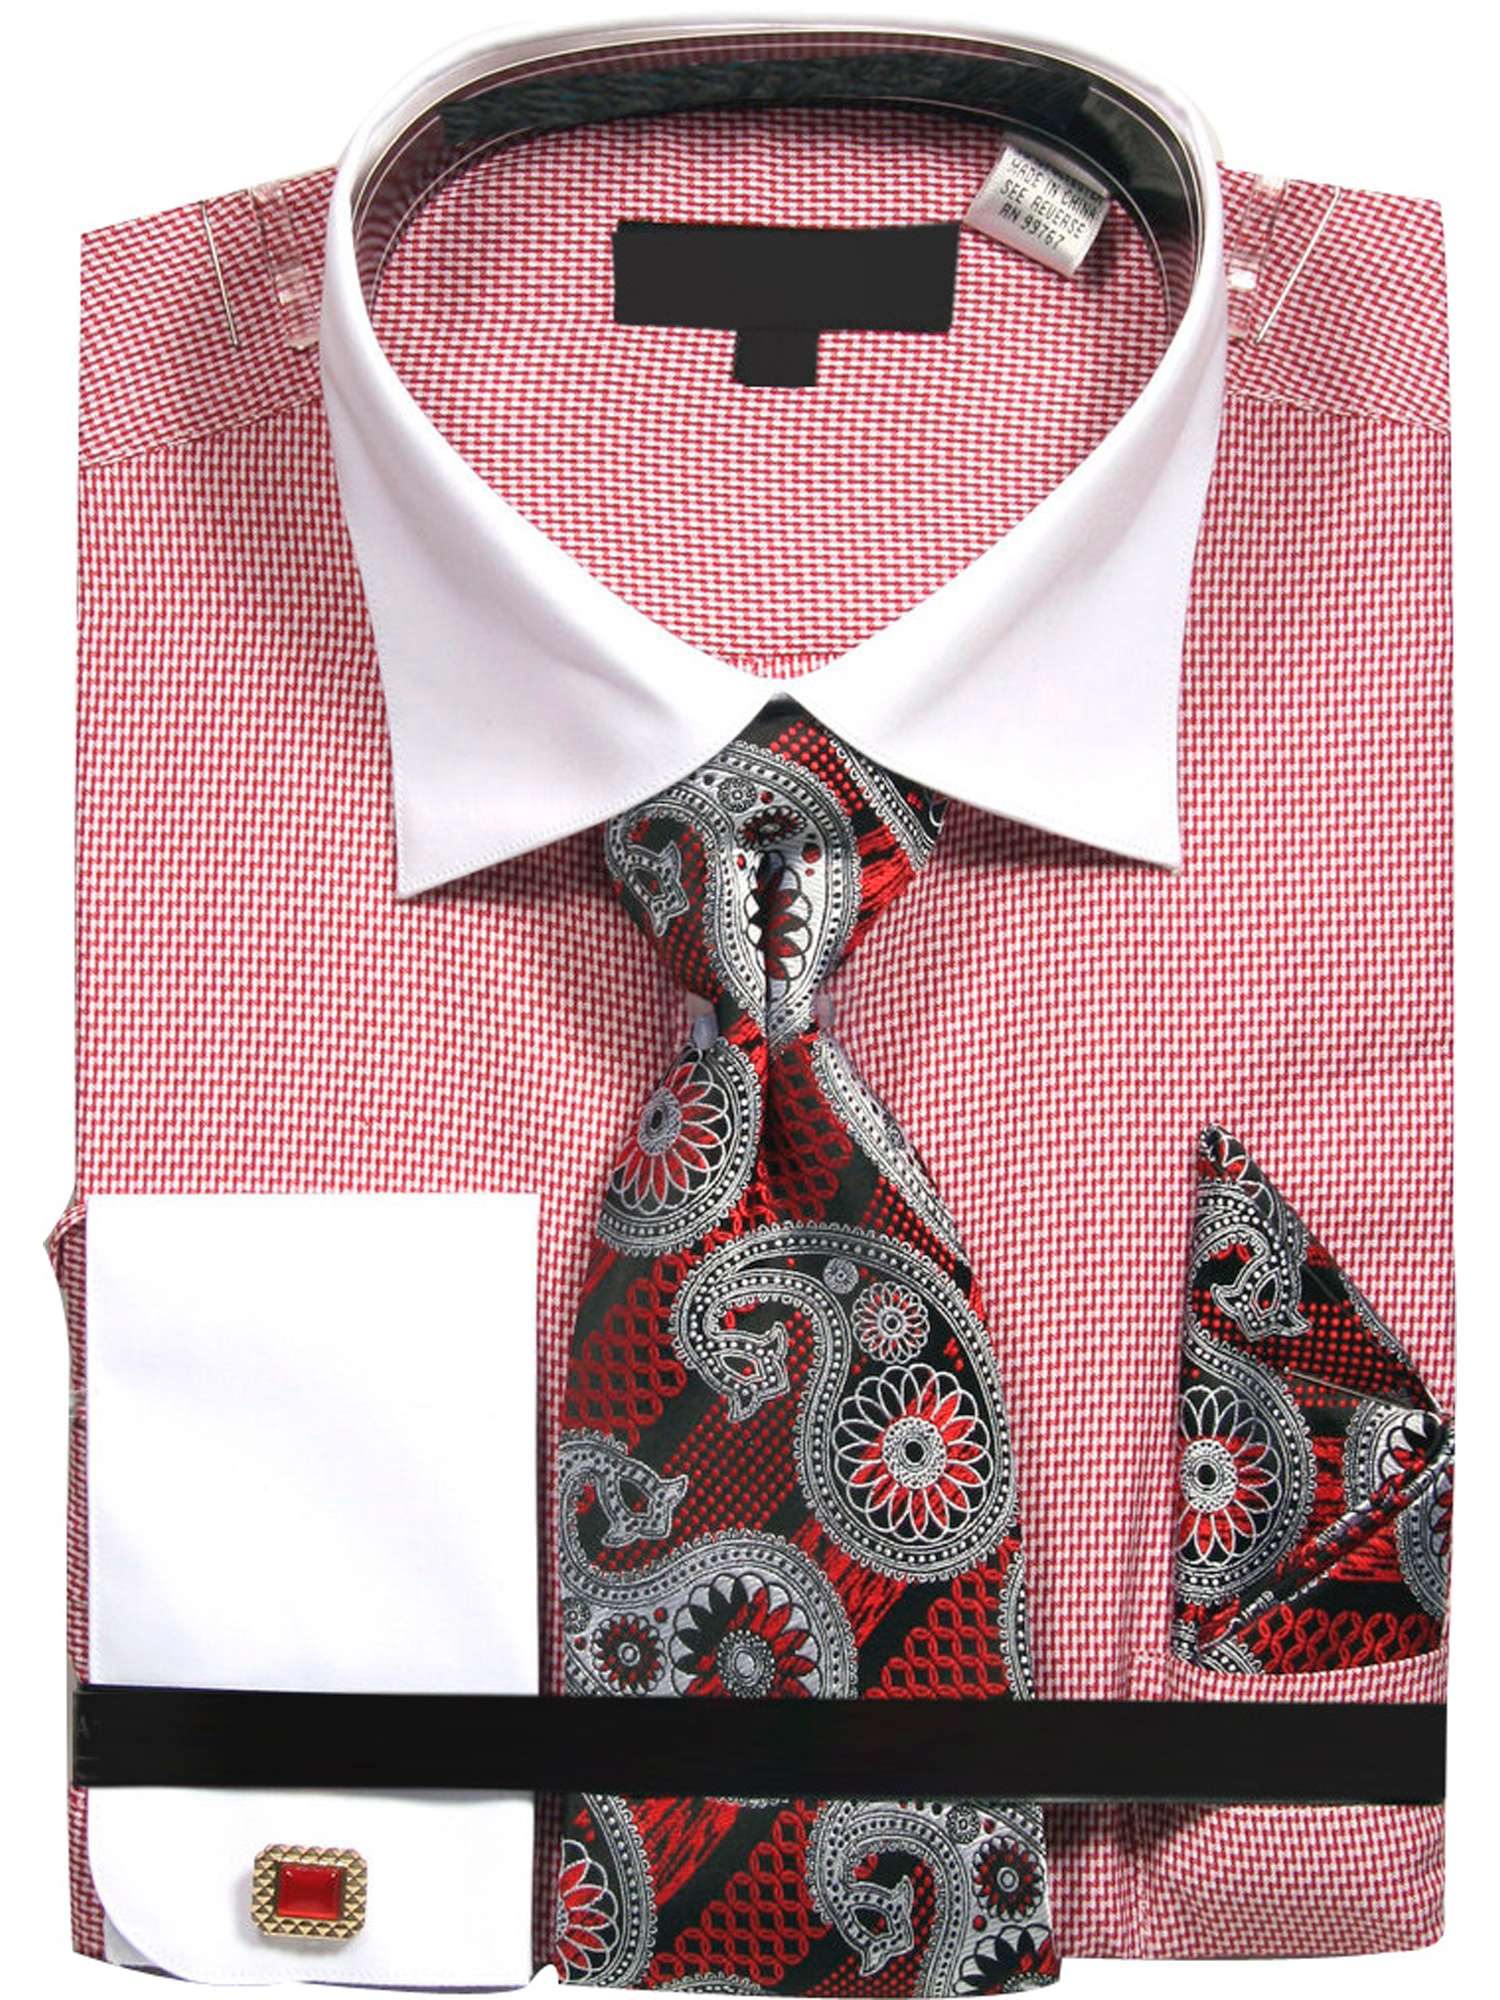 Men's Zig Zag Pattern Dress Shirt with Tie Handkerchief and Cufflinks